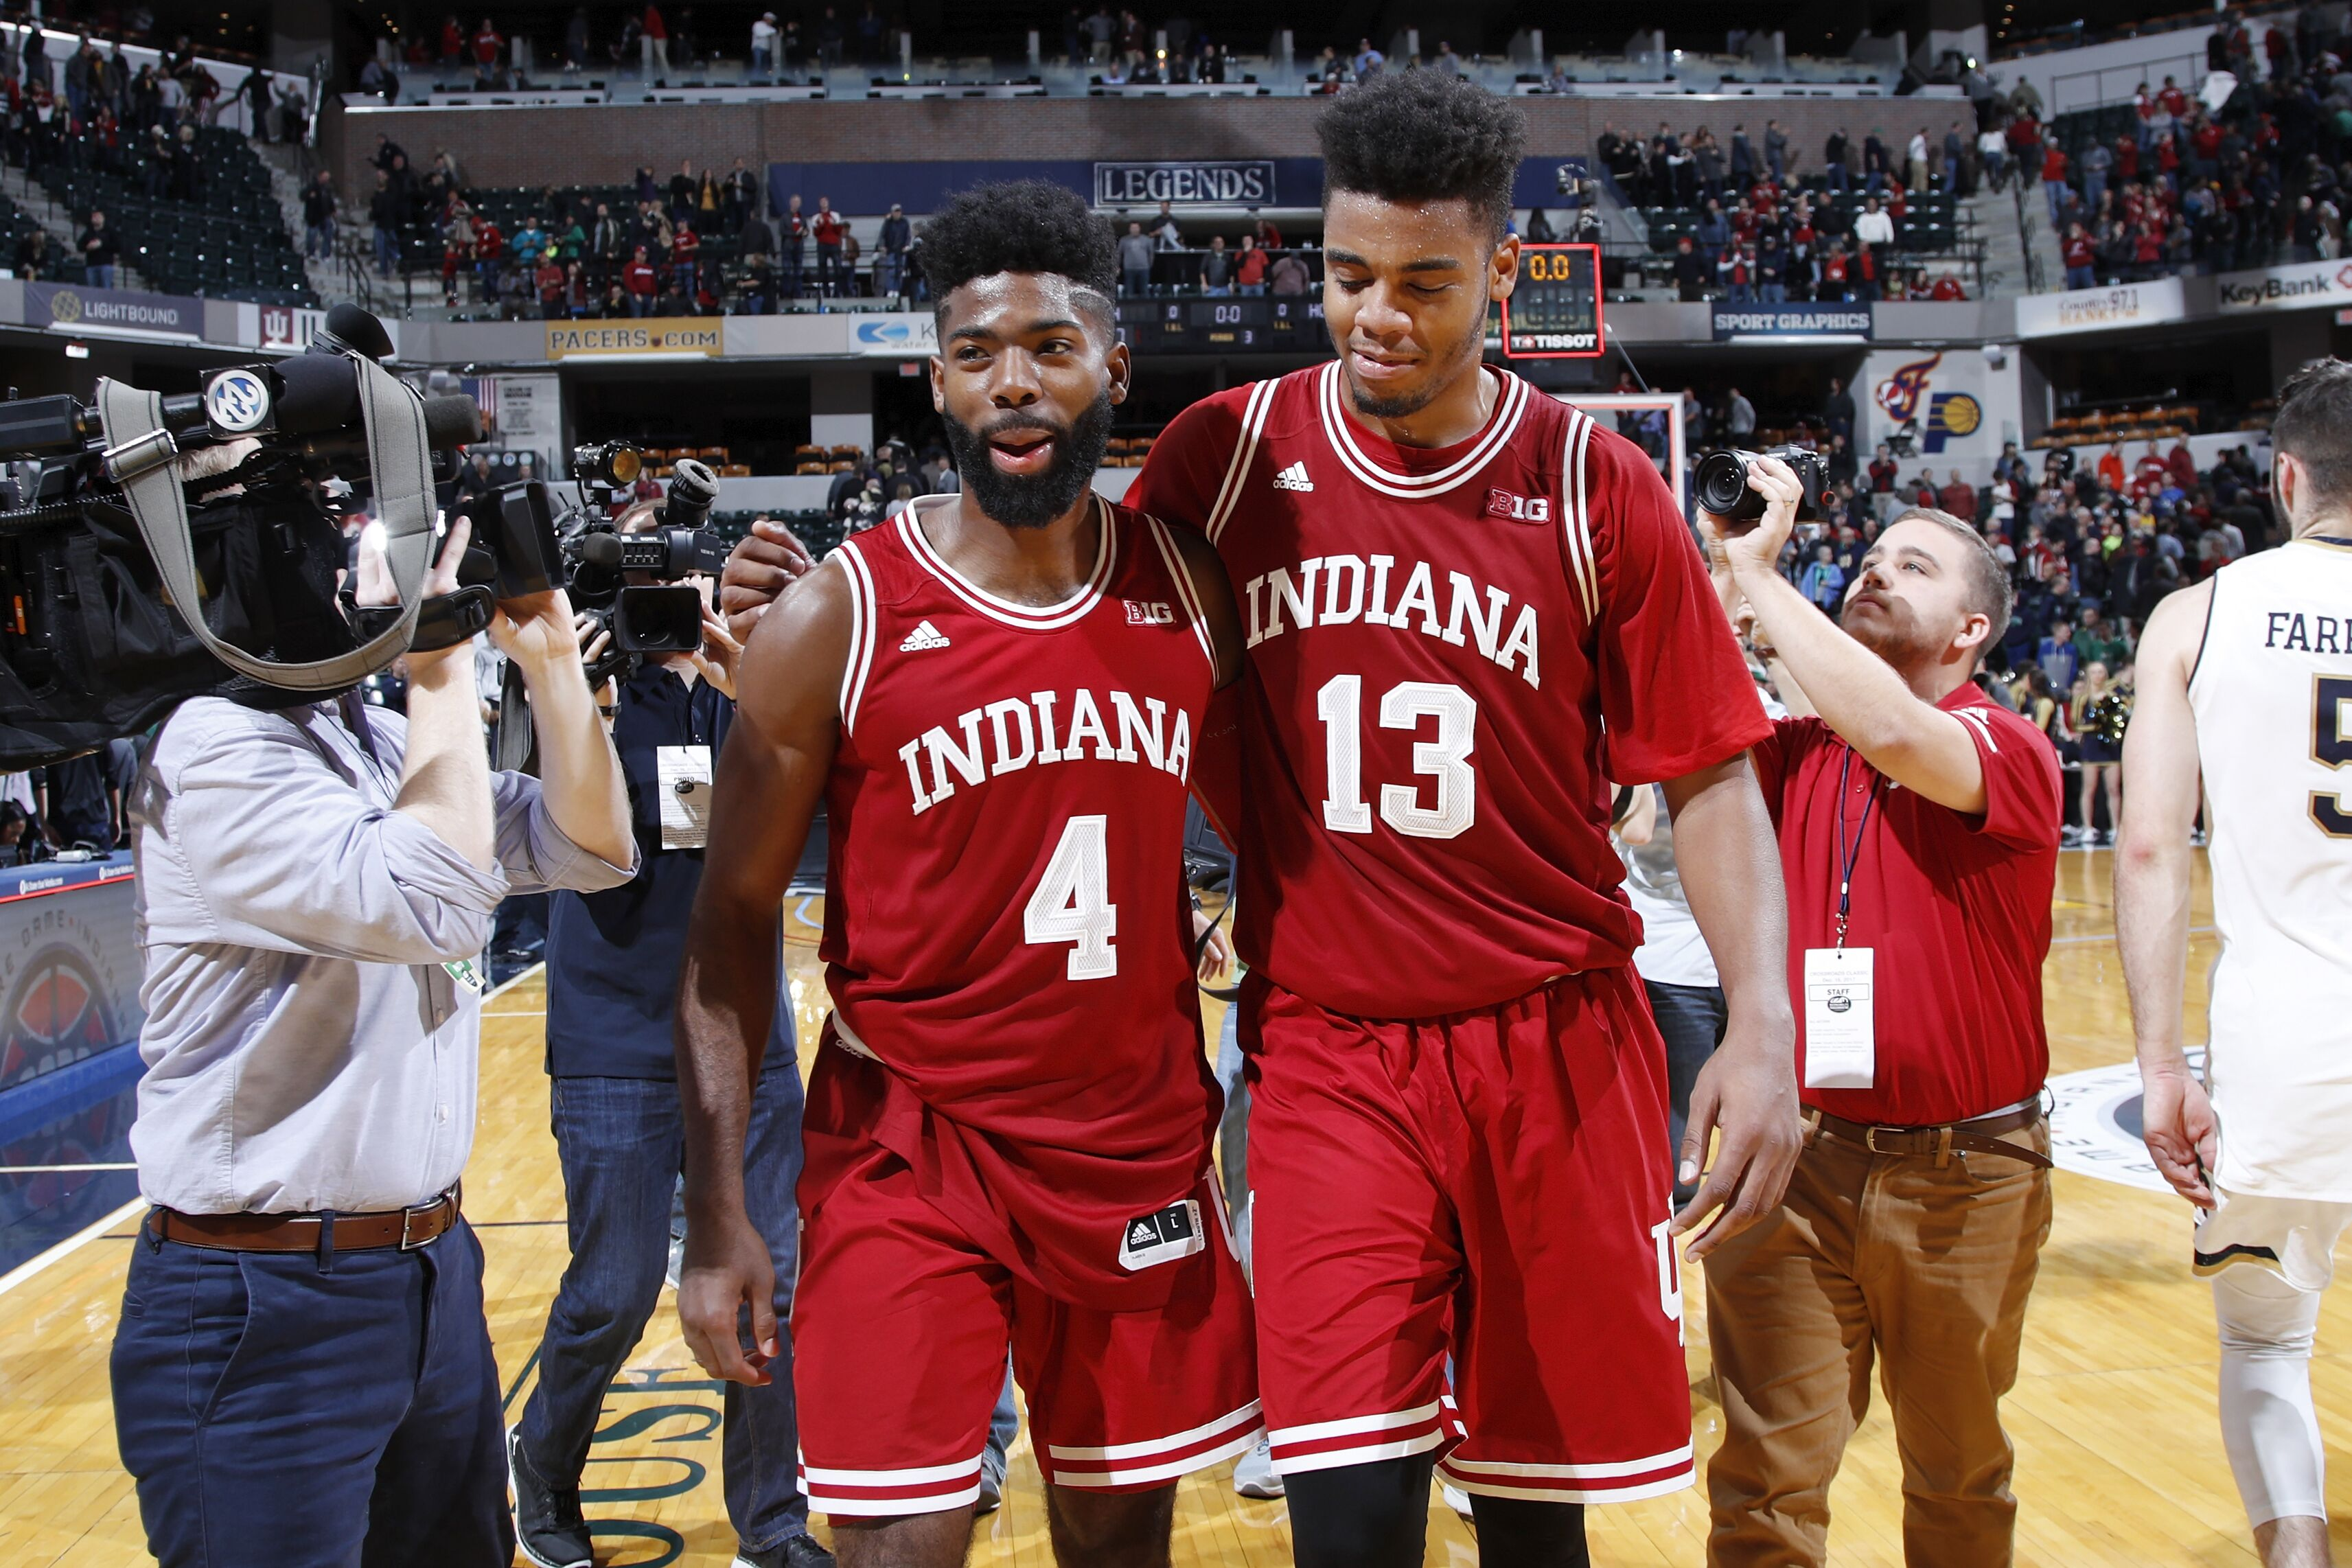 should the indiana hoosiers host an nit game this year?